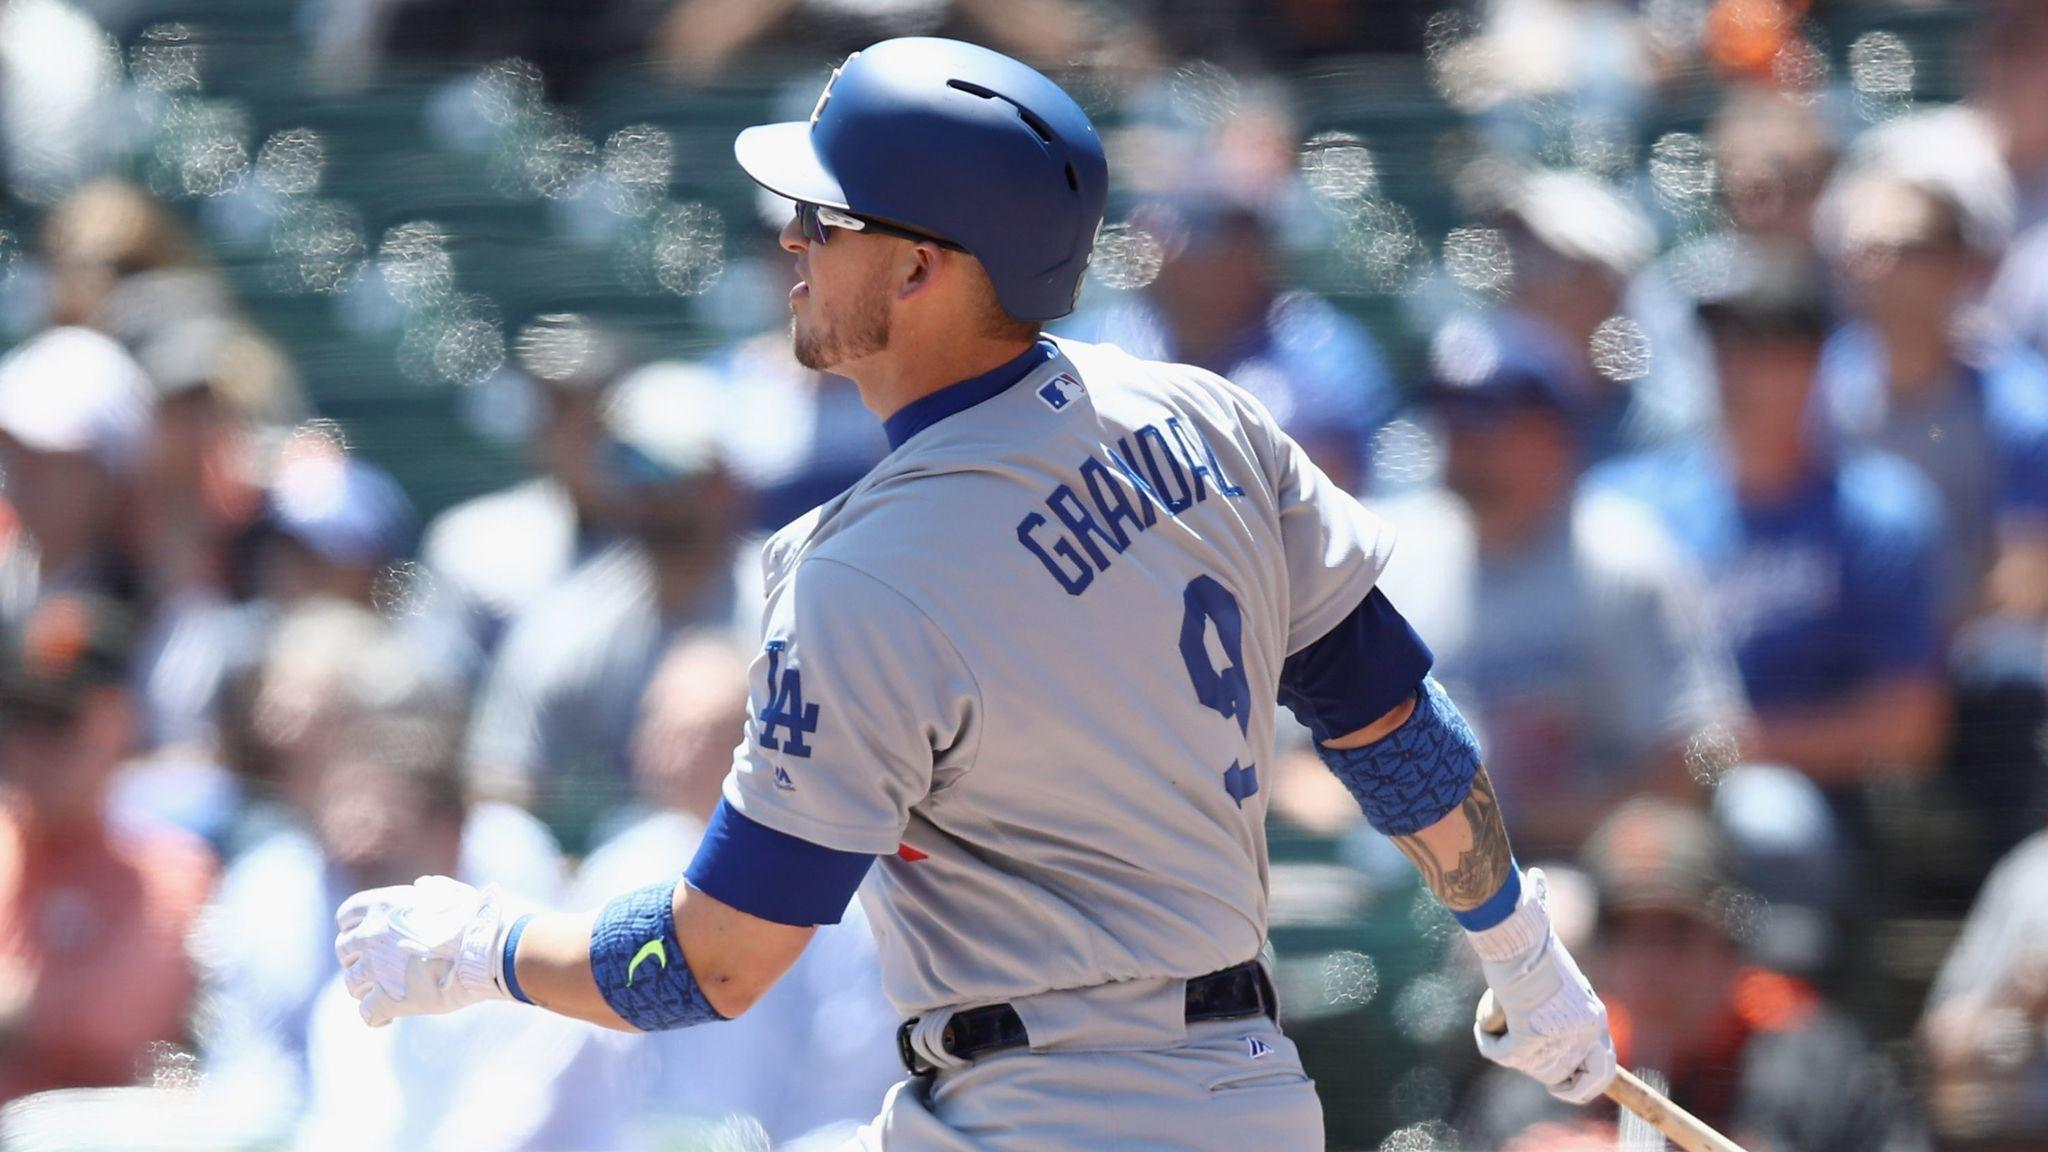 Dodgers' Yasmani Grandal has been on a tear this month, but don't